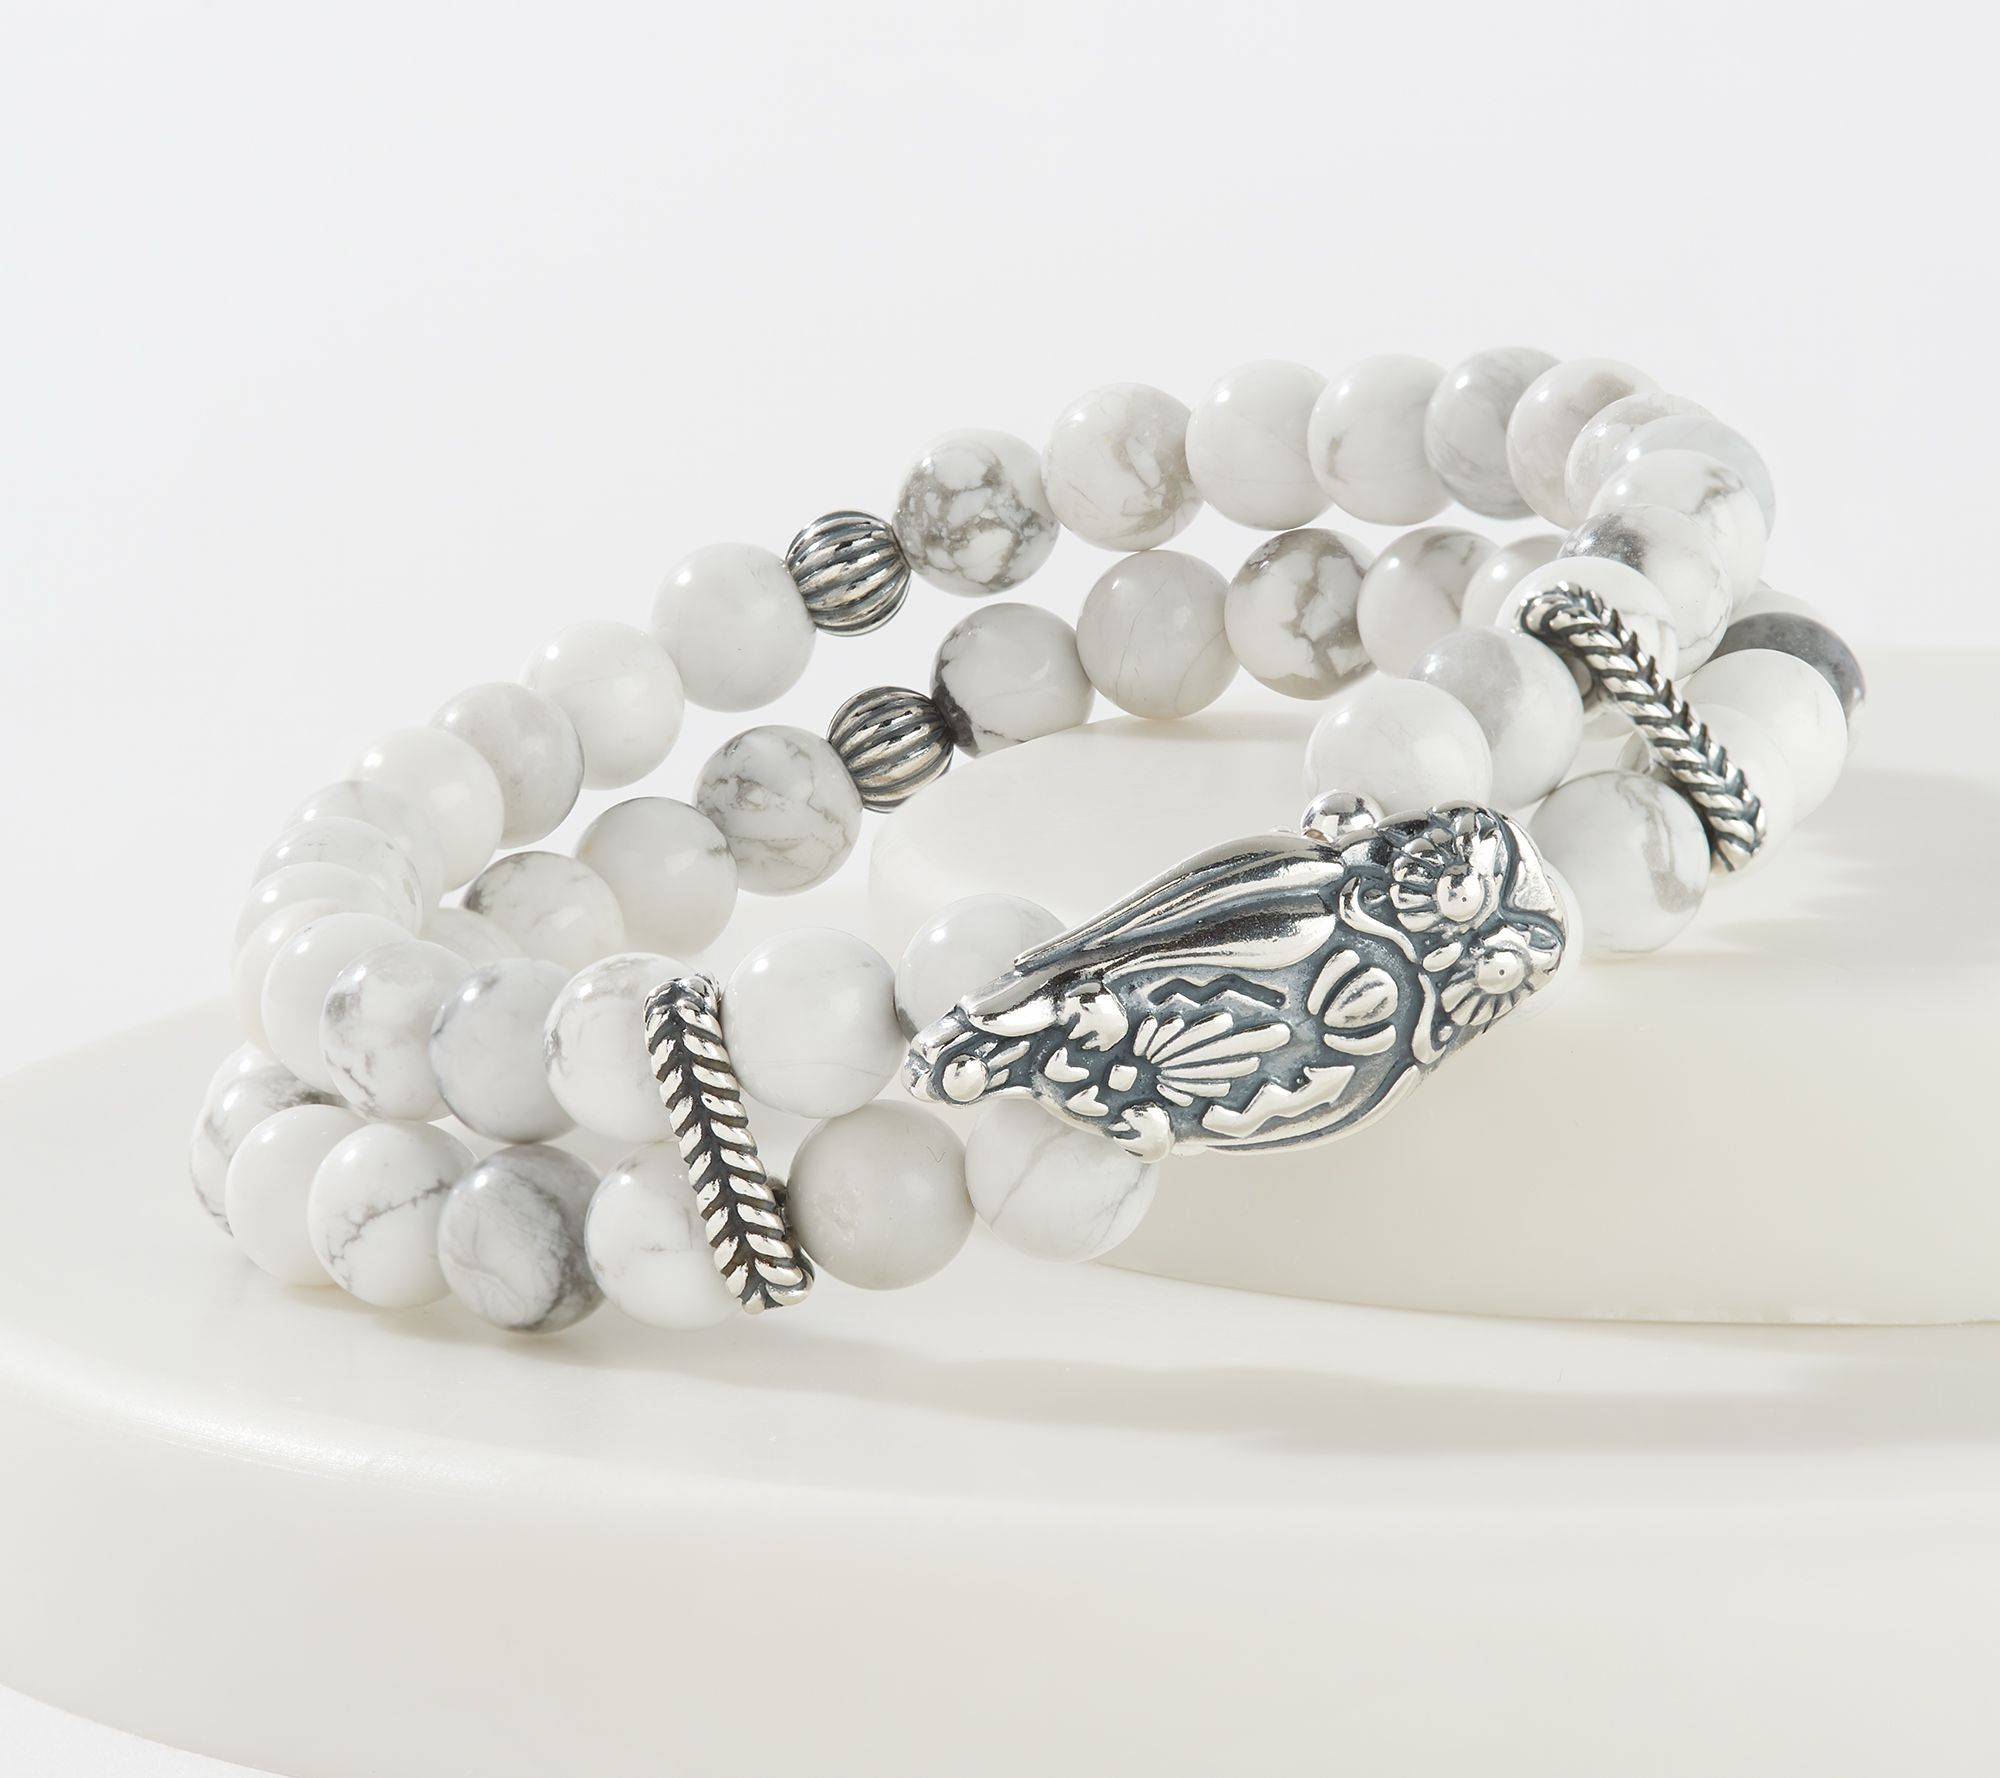 Tranquility Jewelry Jenny Paige Accent Bracelets with Gemstones